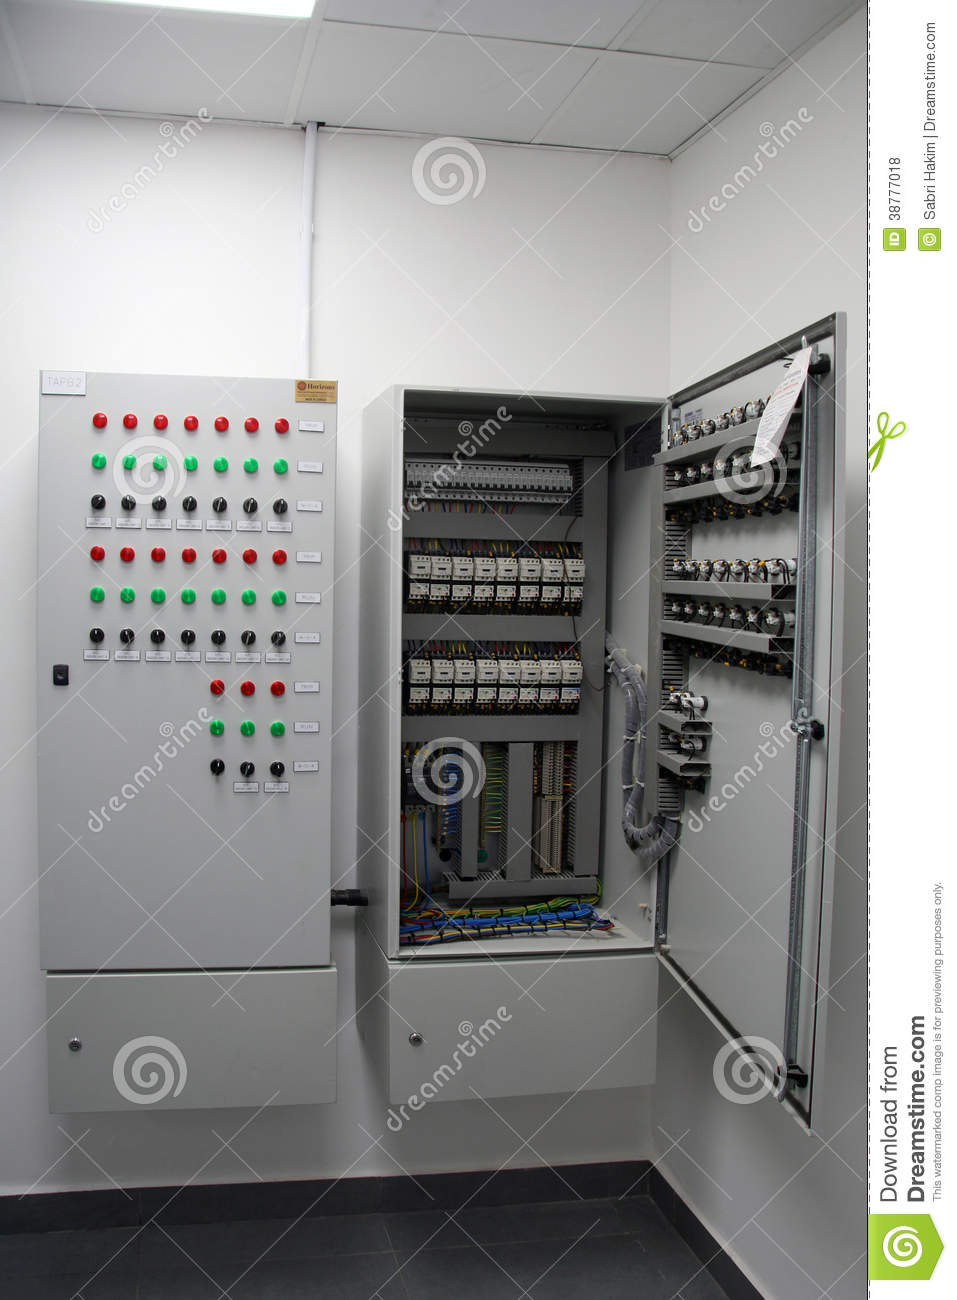 Electrical Cabinet Stock Photo Image 38777018